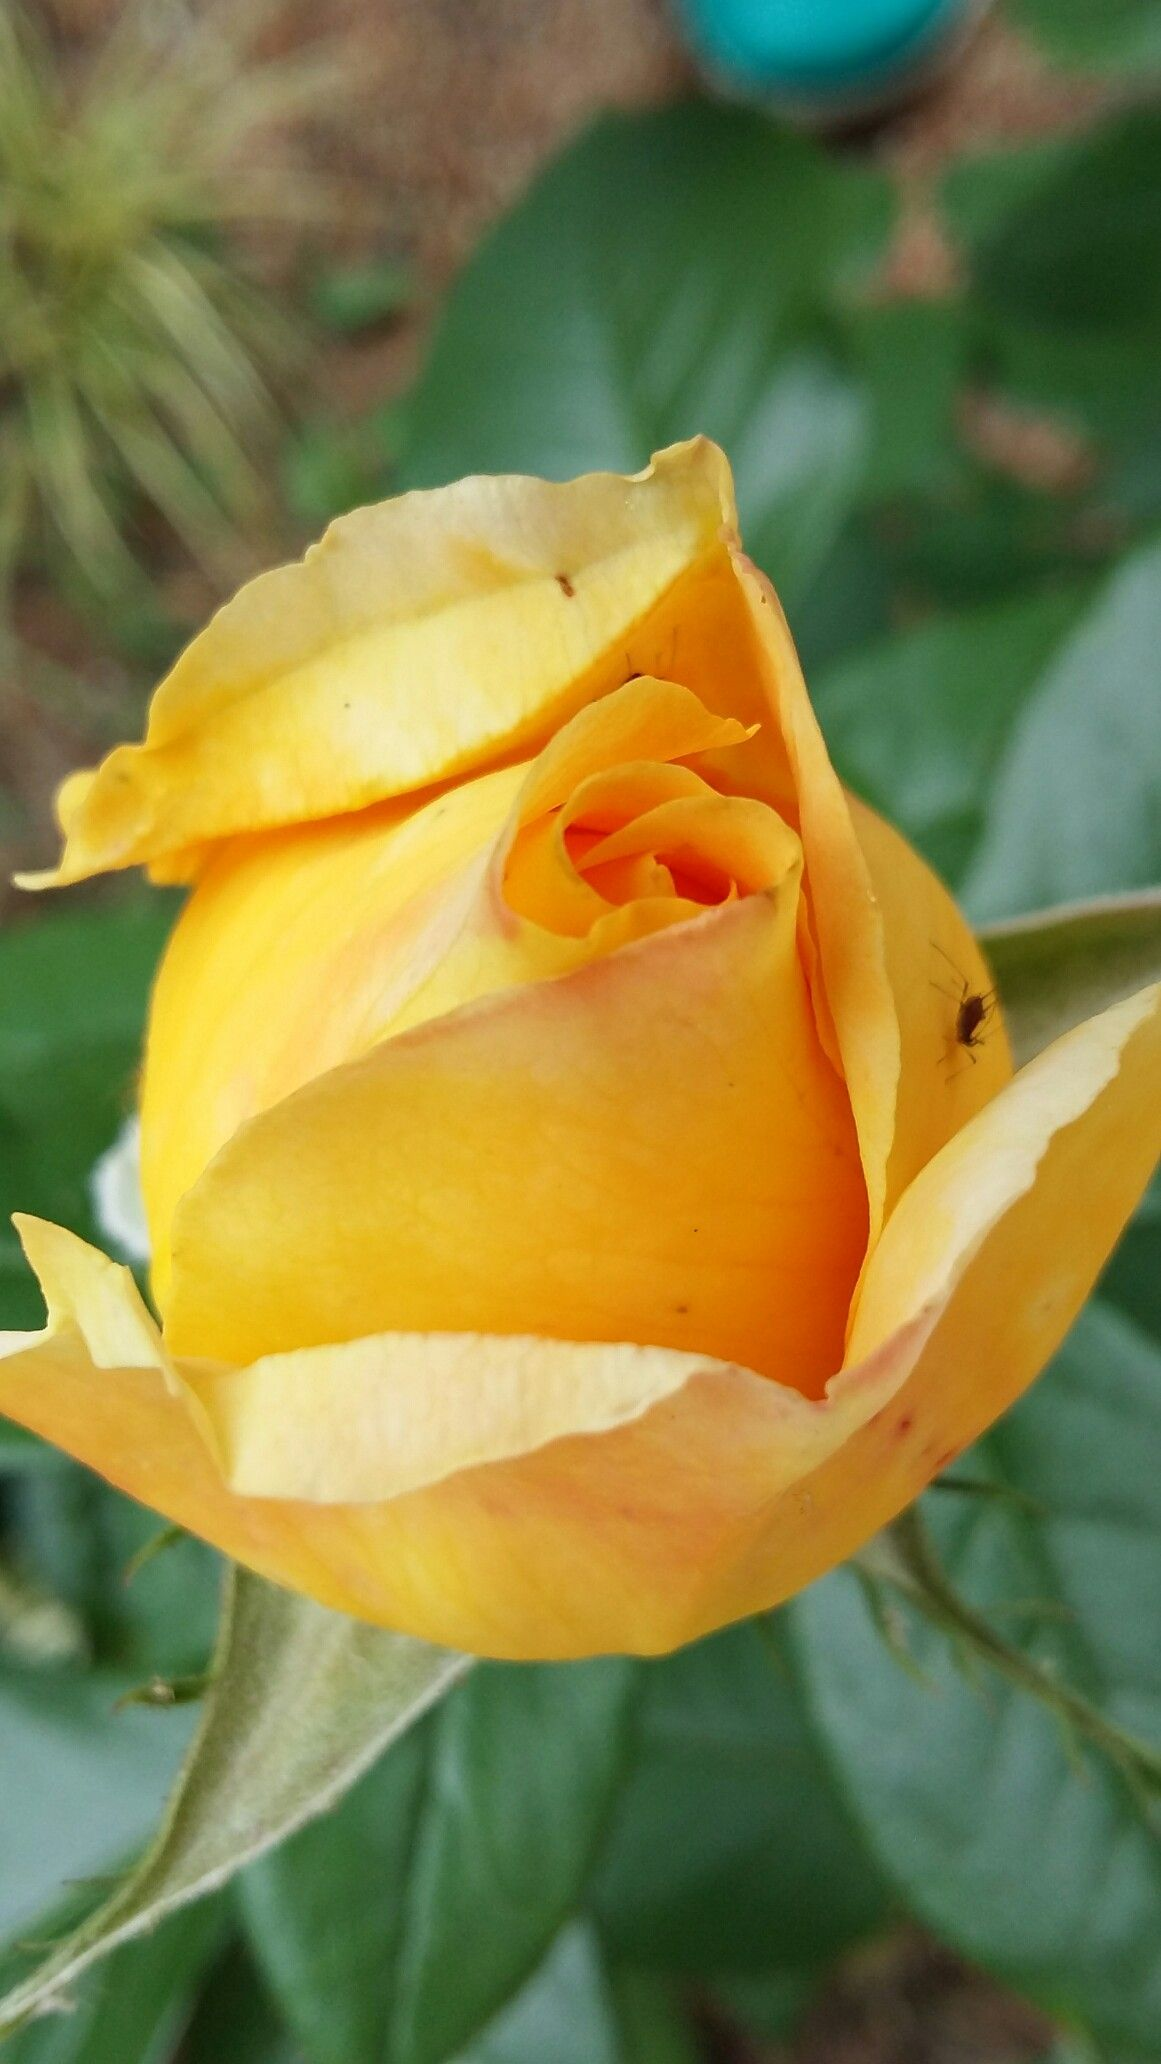 Candlelight in bud my rose garden pinterest garden bud and rose